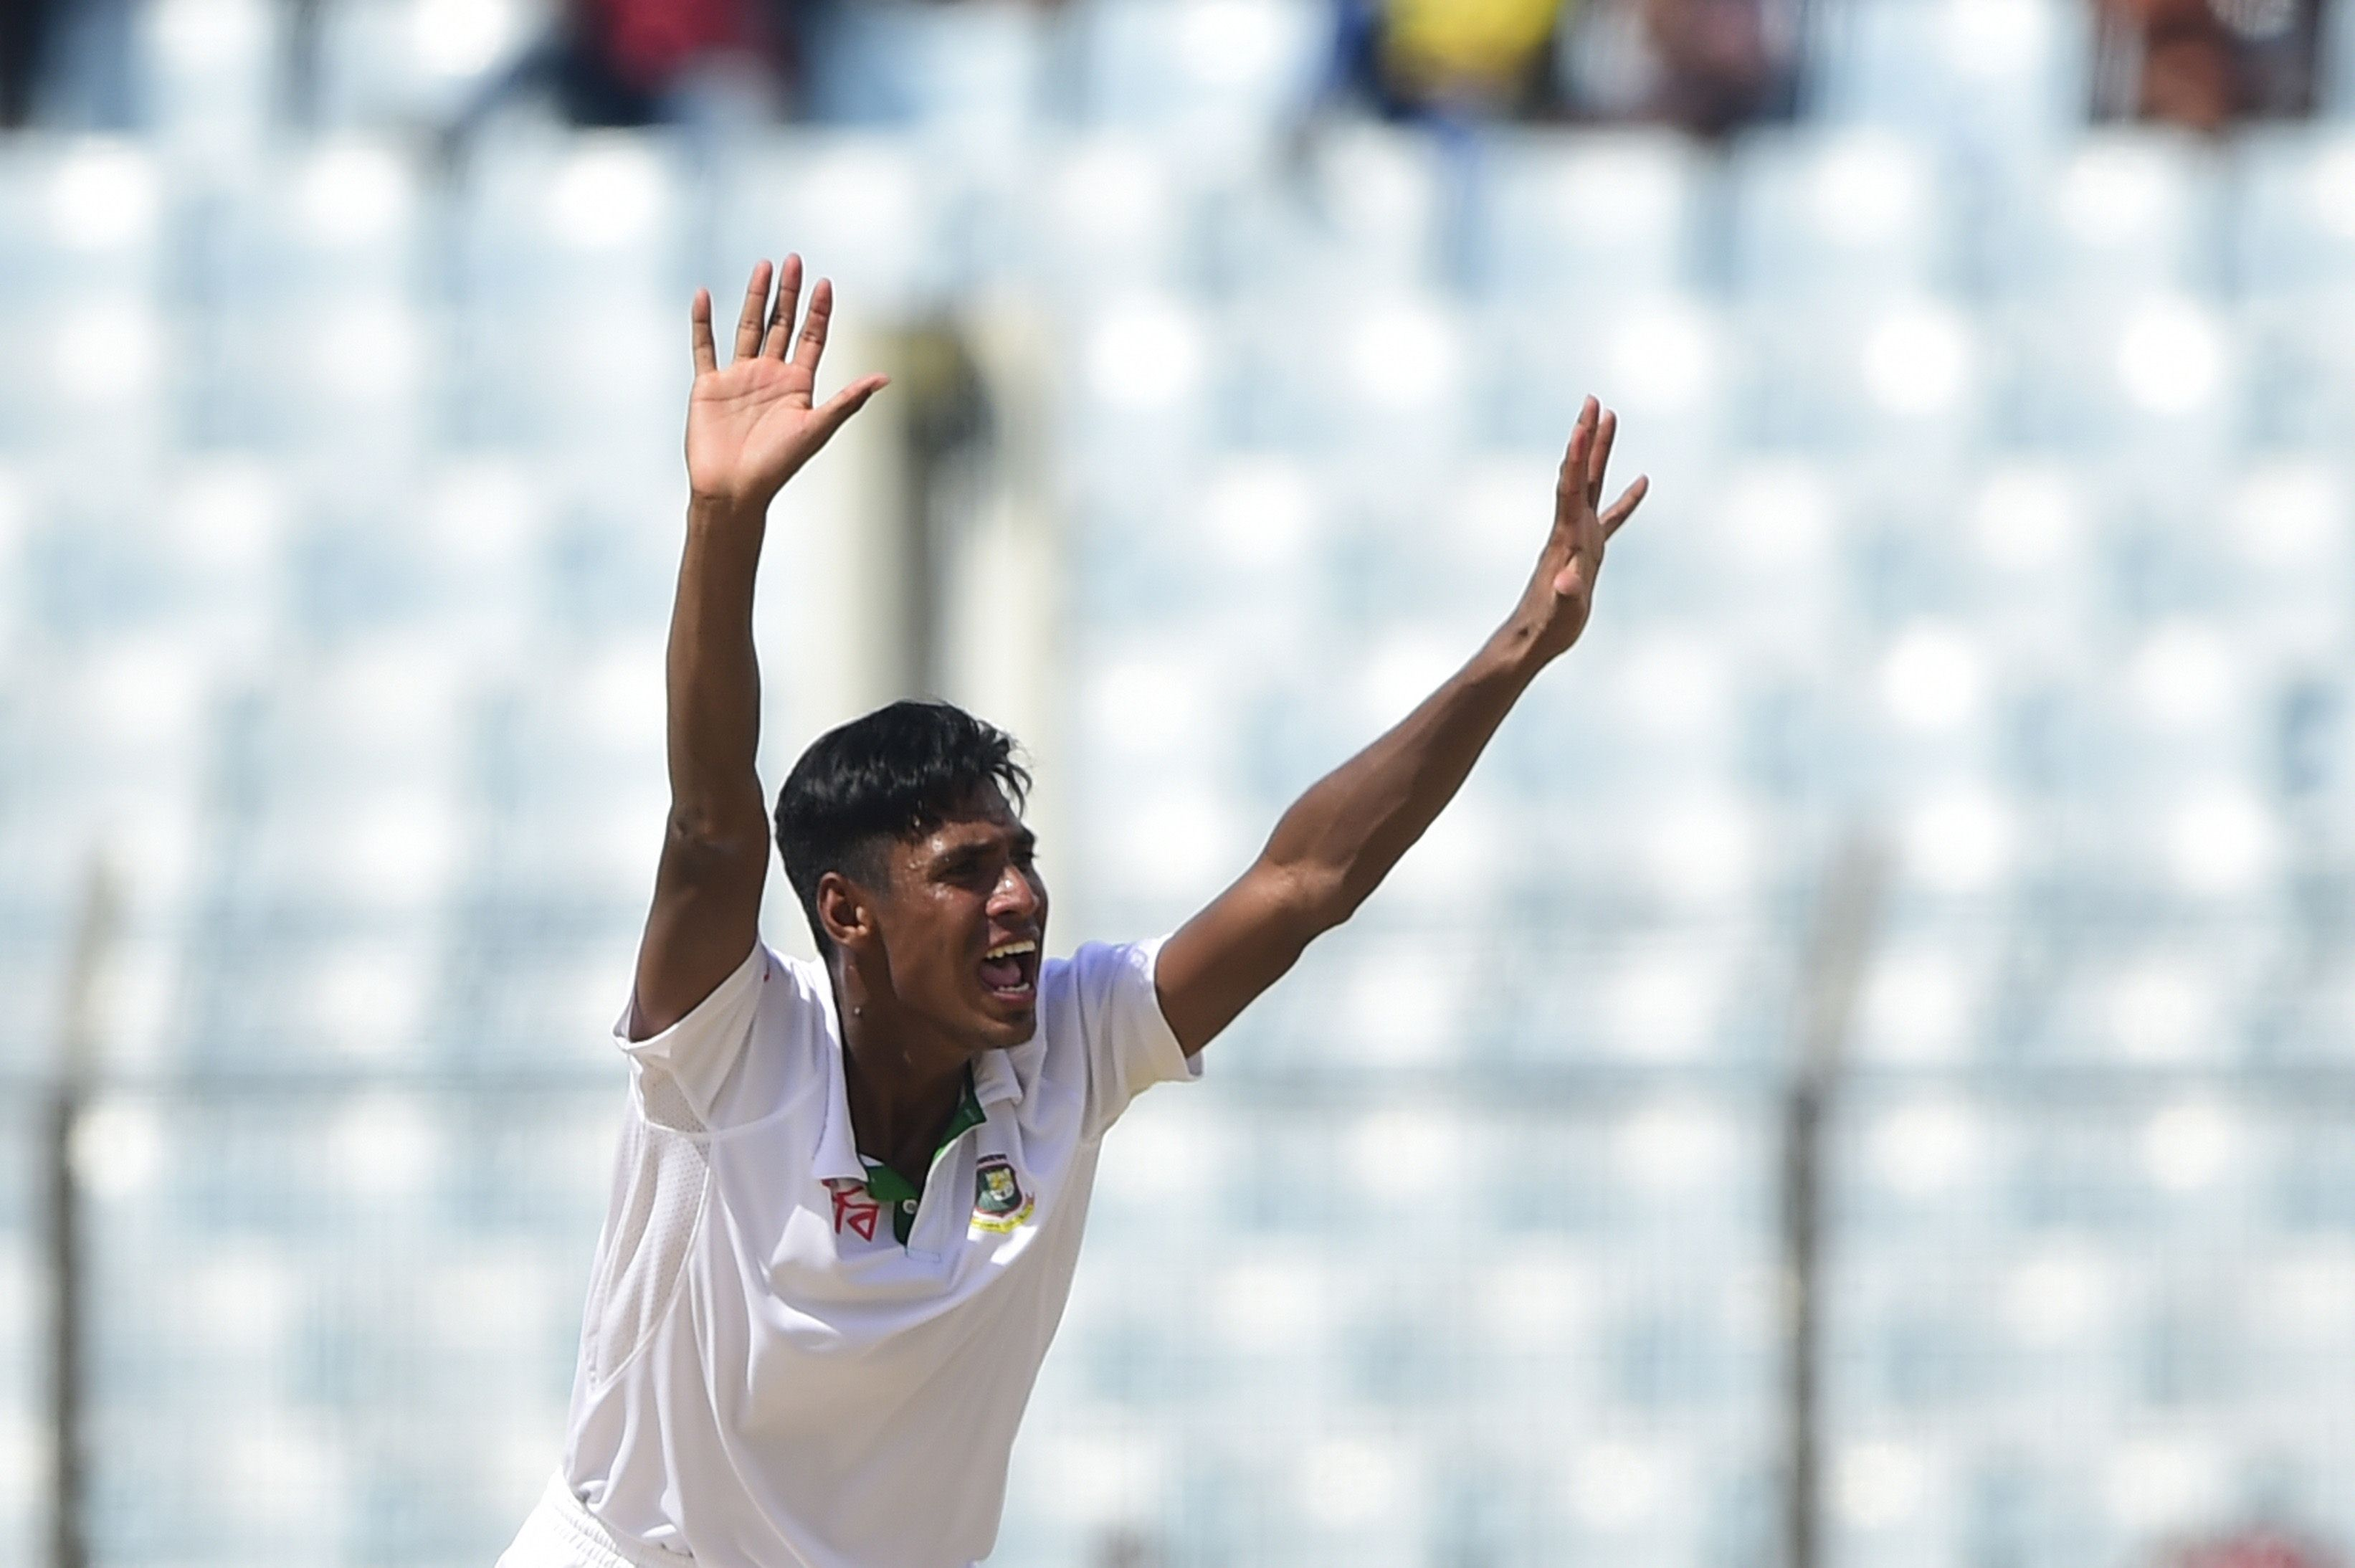 Bangladesh cricketer Mustafizur Rahman appeals successfully for leg before wicket decision against South Africa cricketer Jean-Paul Duminy during the first day of the first Test match between Bangladesh and South Africa at the Zahur Ahmed Chowdhury Stadium in Chittagong on July 21, 2015. AFP PHOTO/ Munir uz ZAMAN